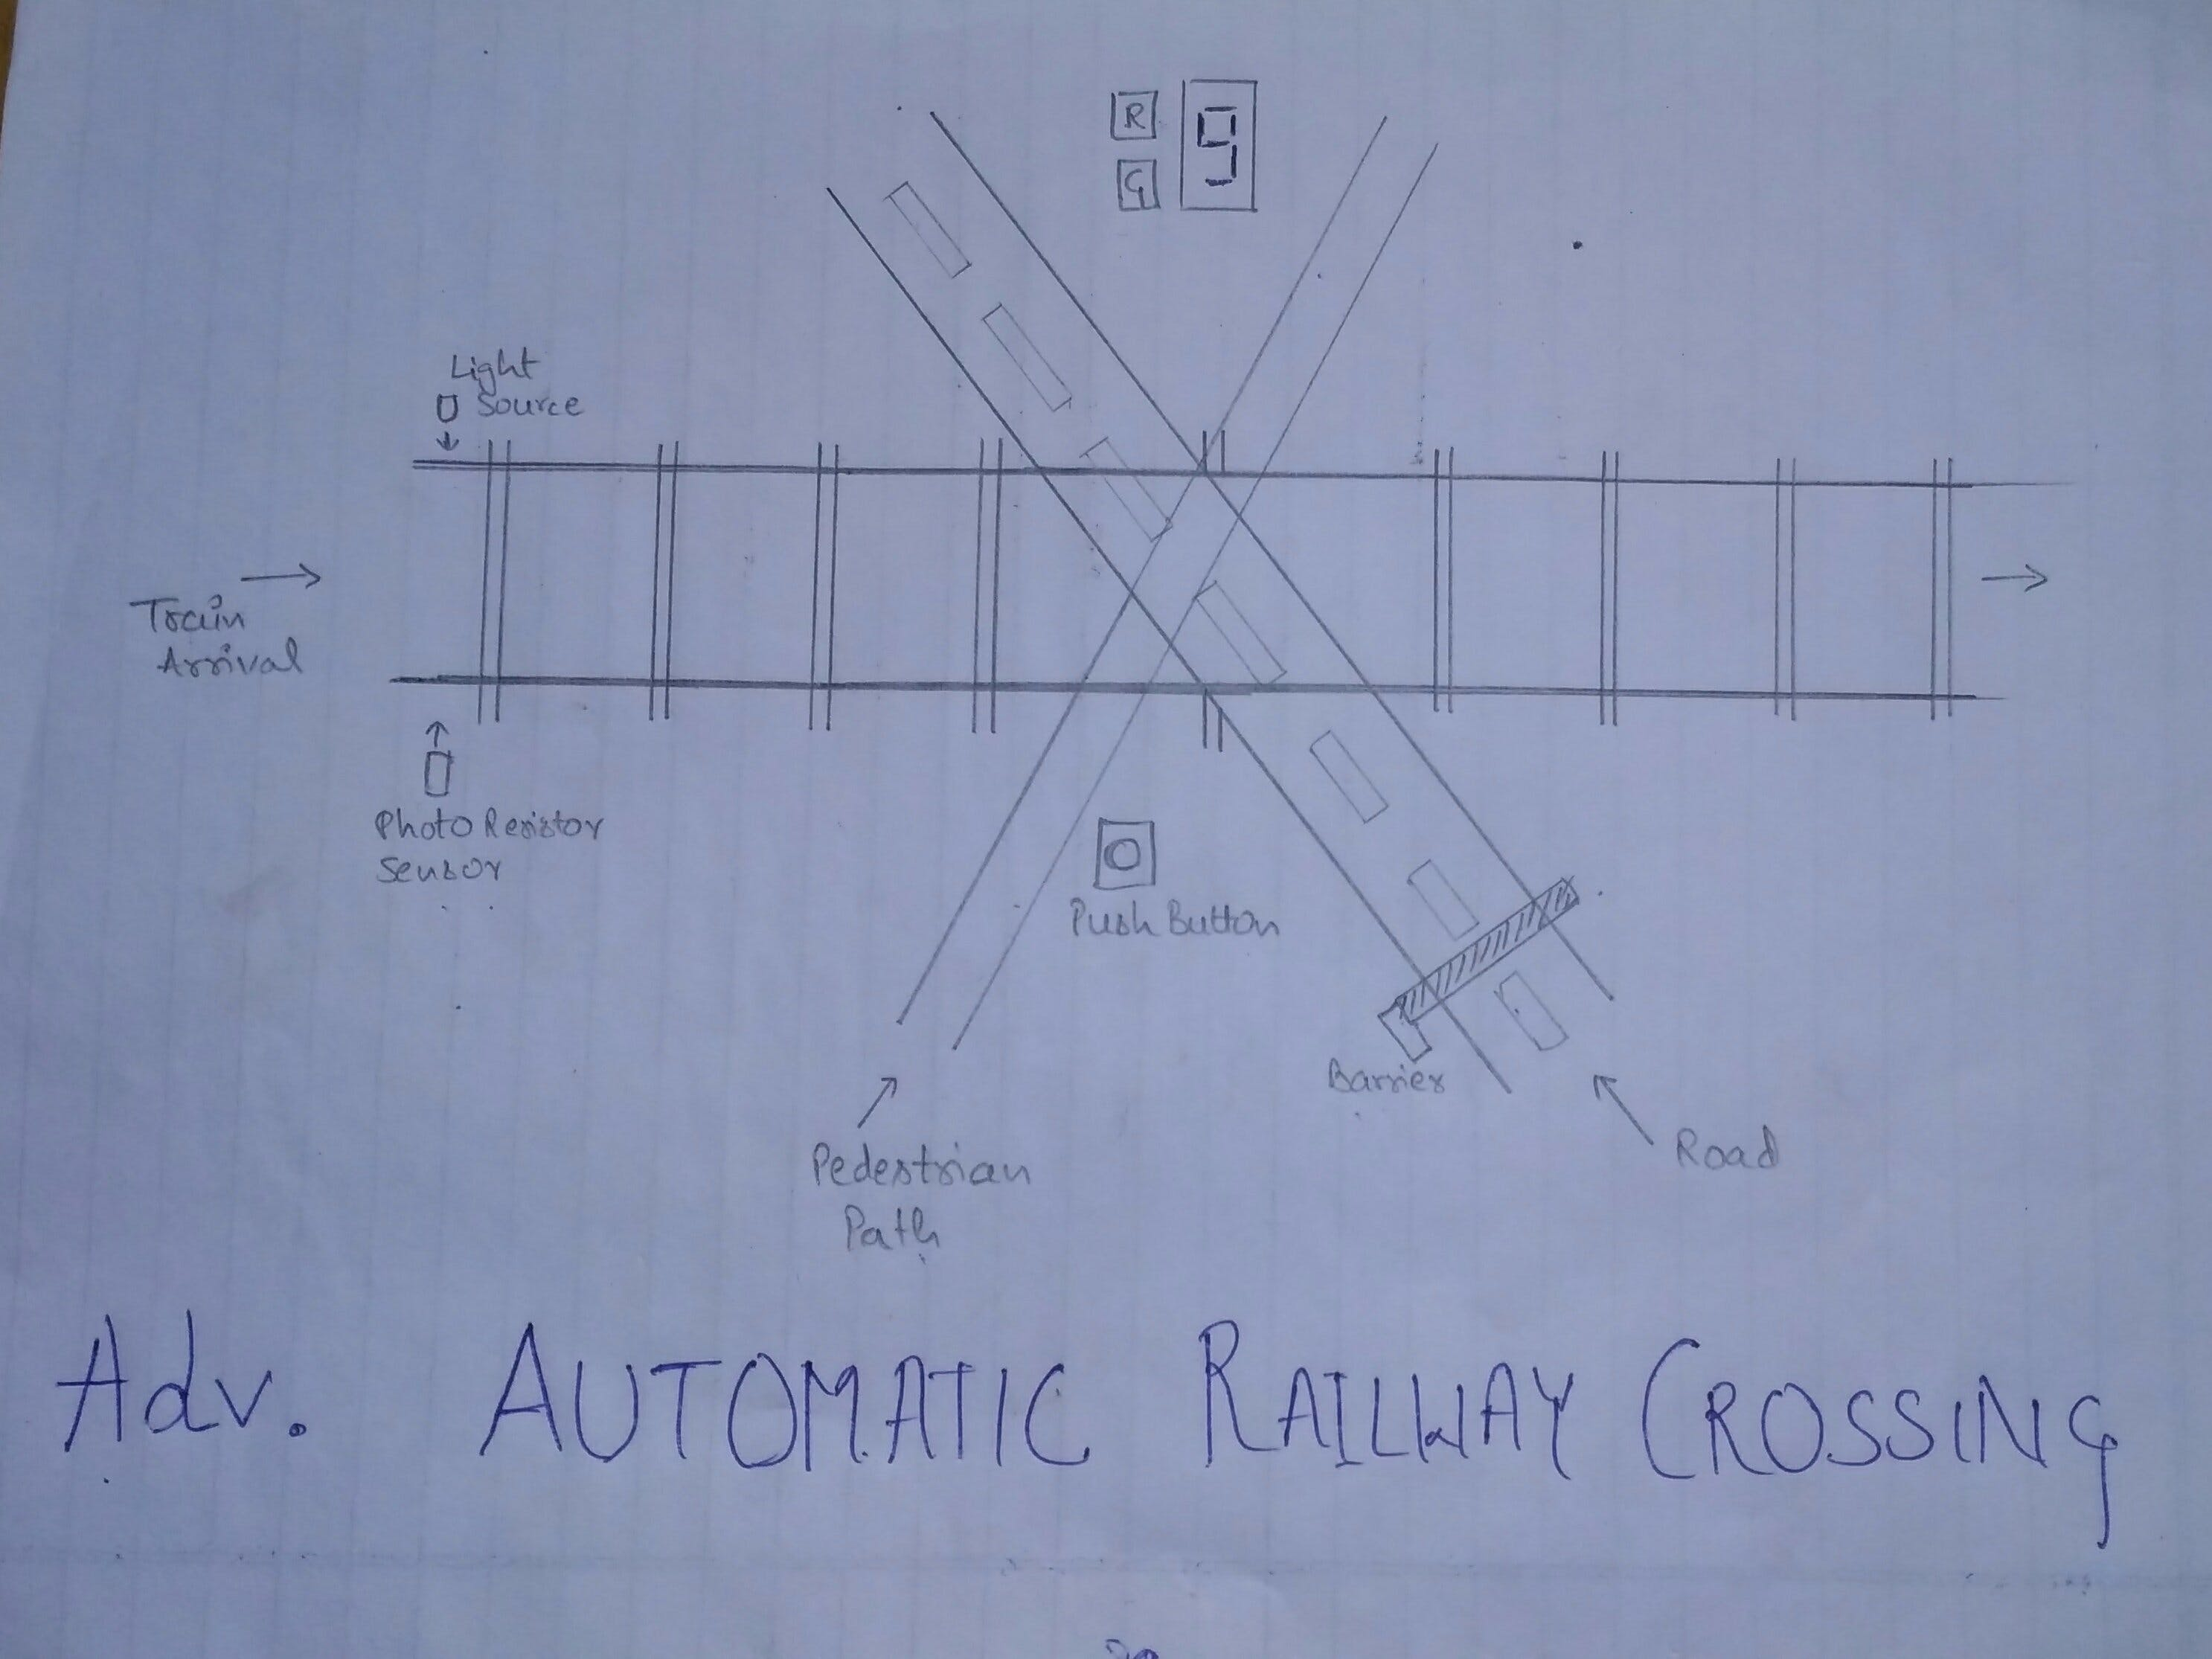 Advance Automatic Railway Crossing System